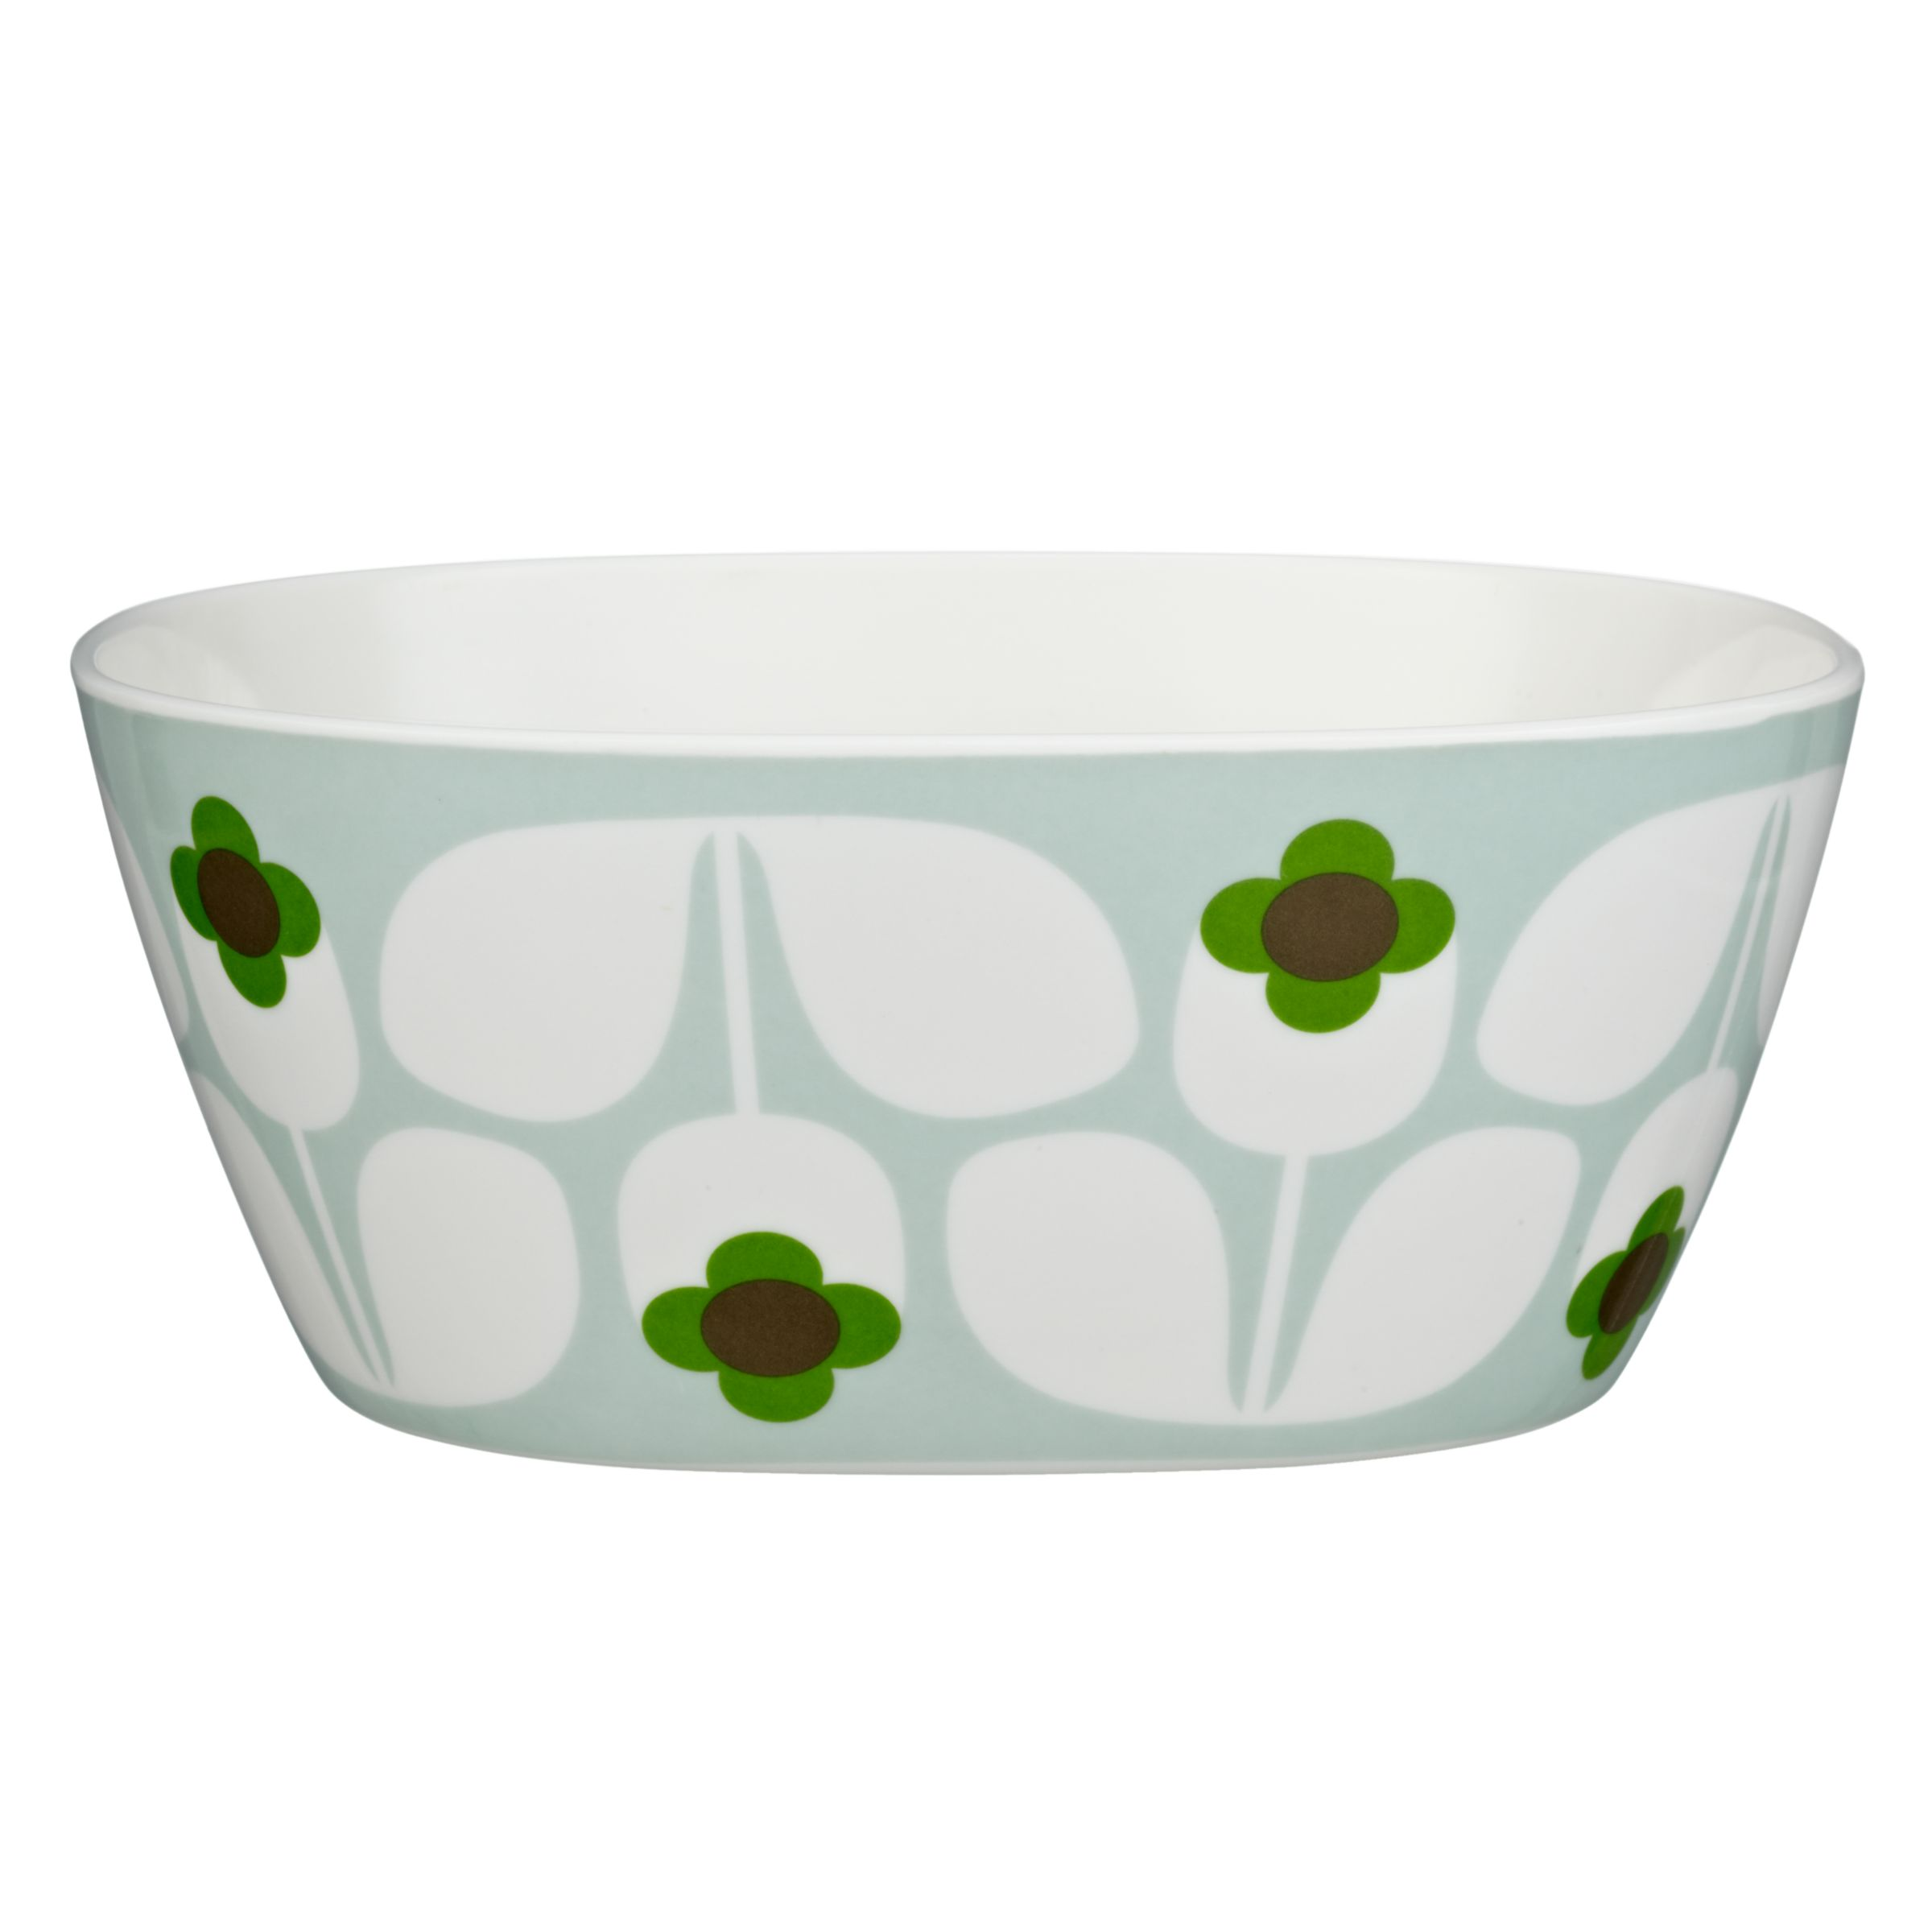 Orla Kiely Wallflower Melamine Bowl, Multi, Small